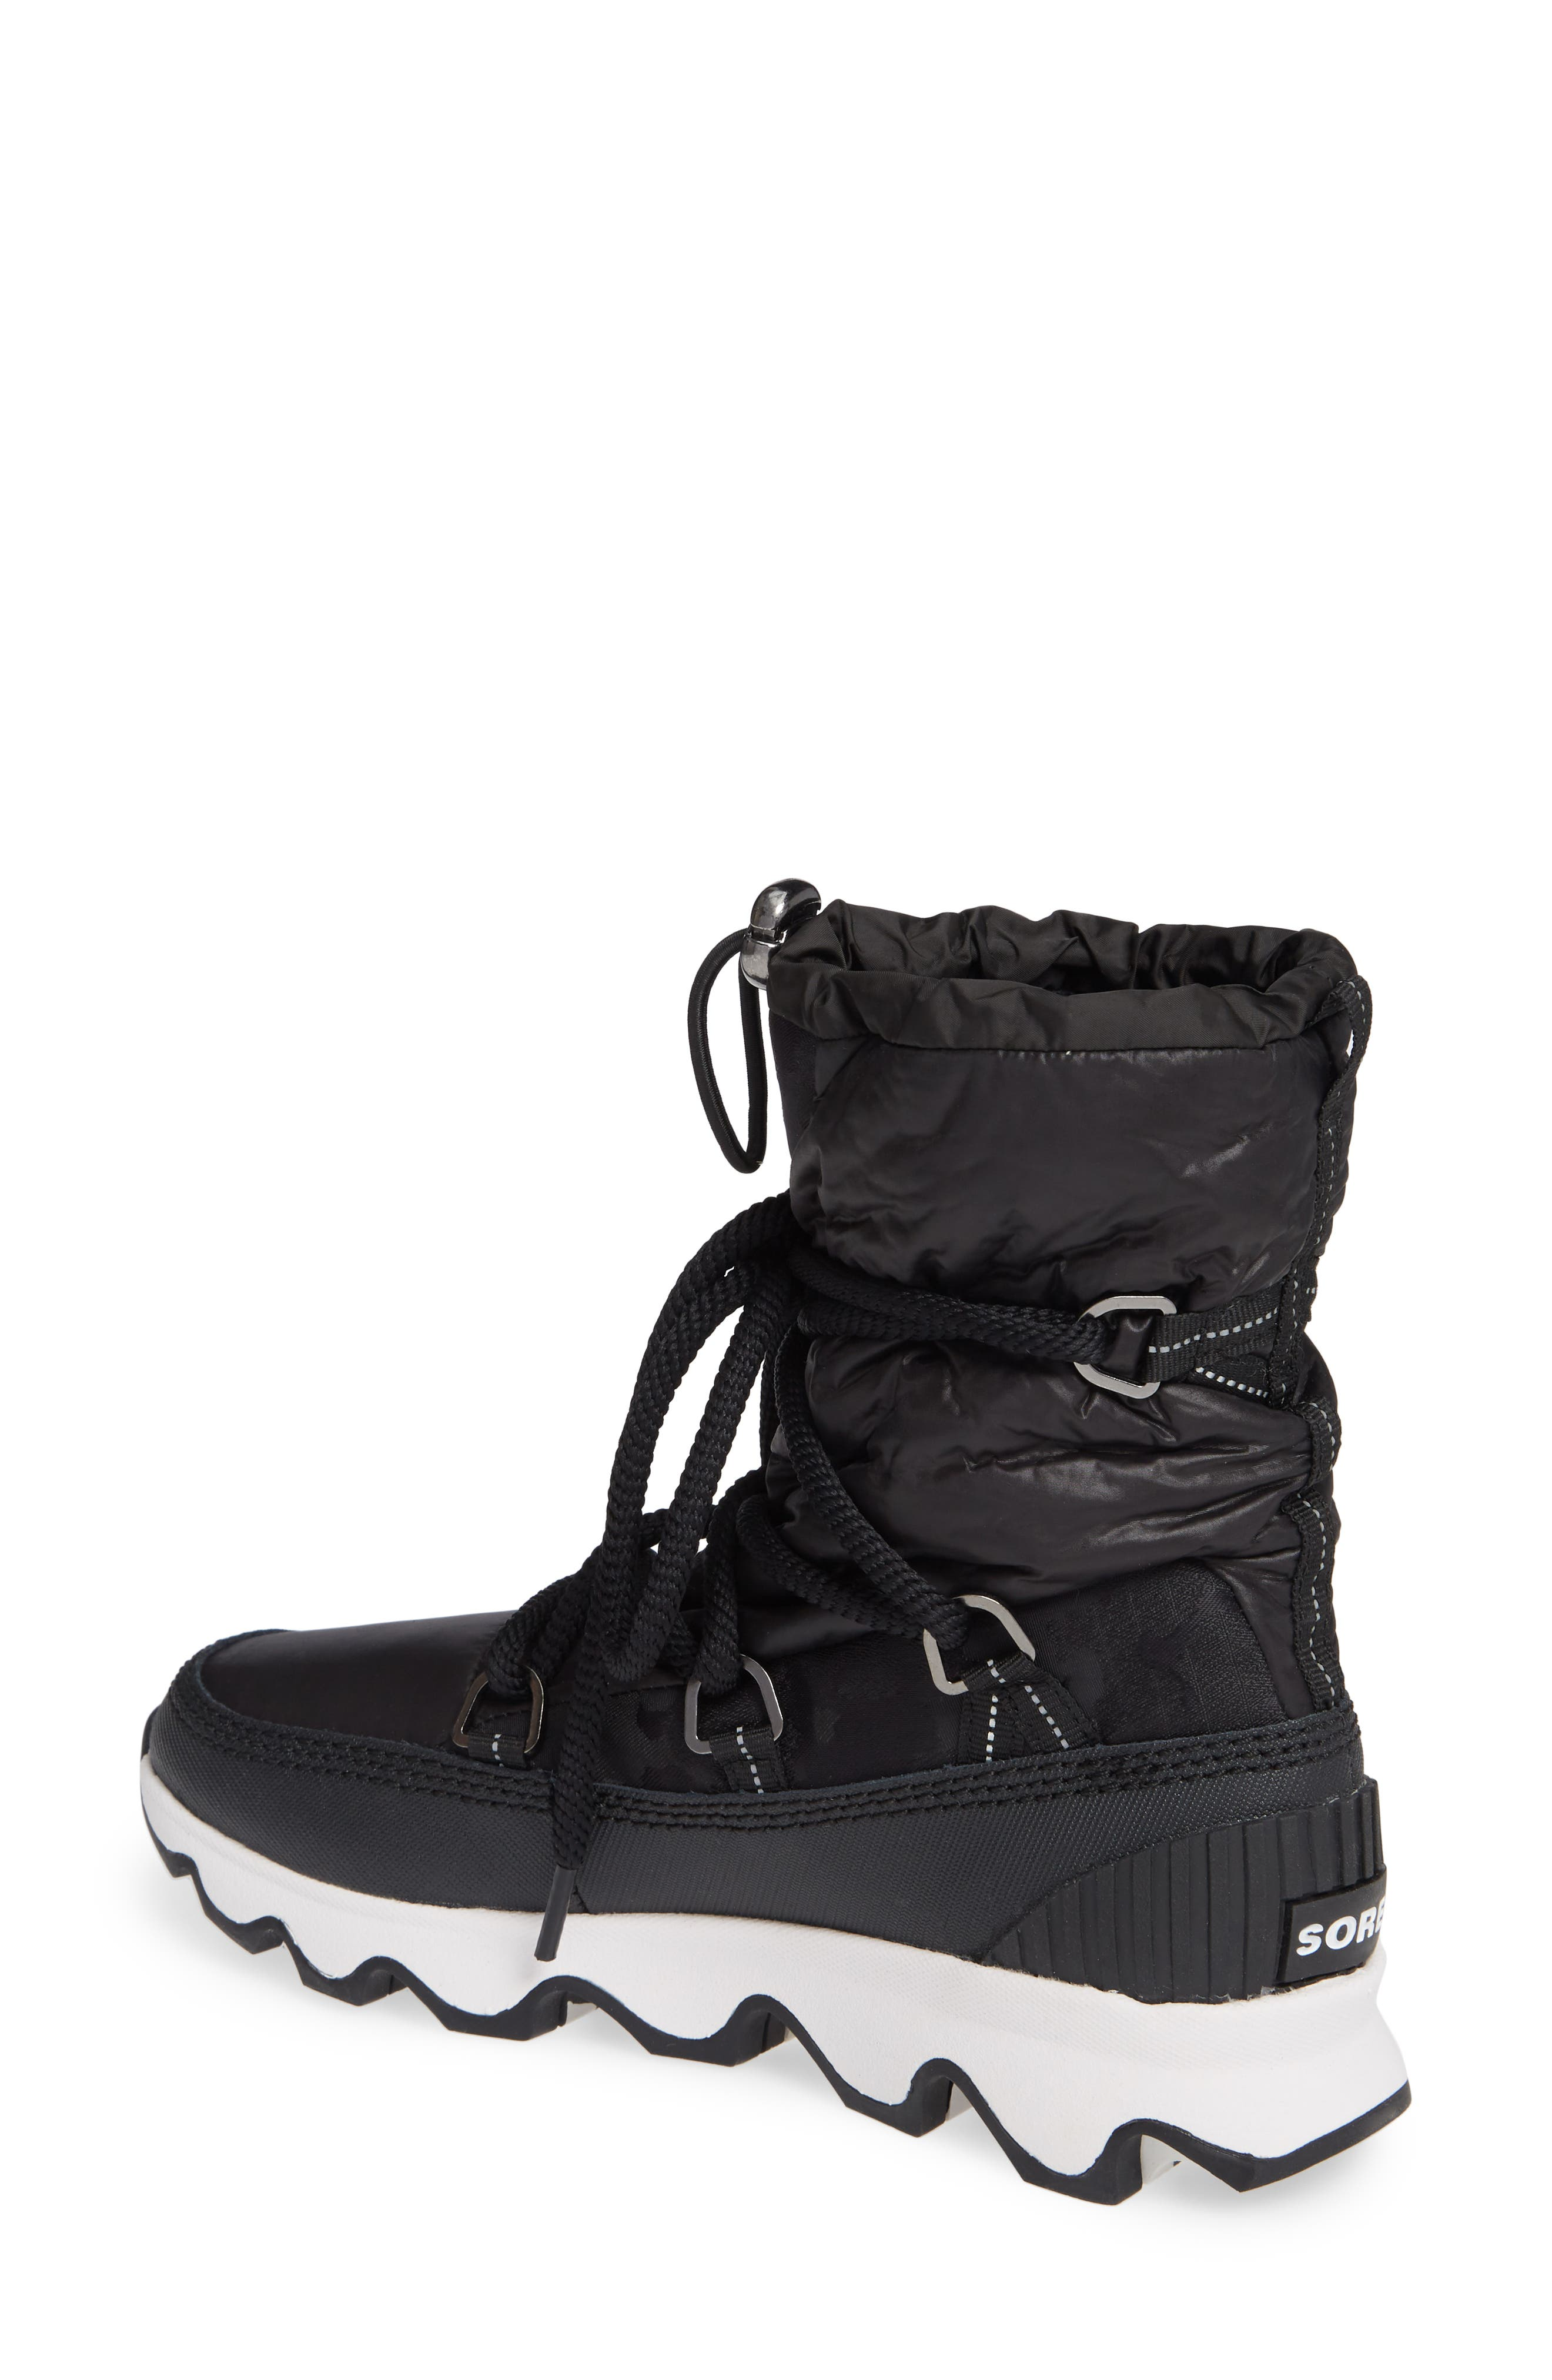 Kinetic Waterproof Insulated Winter Boot,                             Alternate thumbnail 2, color,                             CAMO/ BLACK/ WHITE